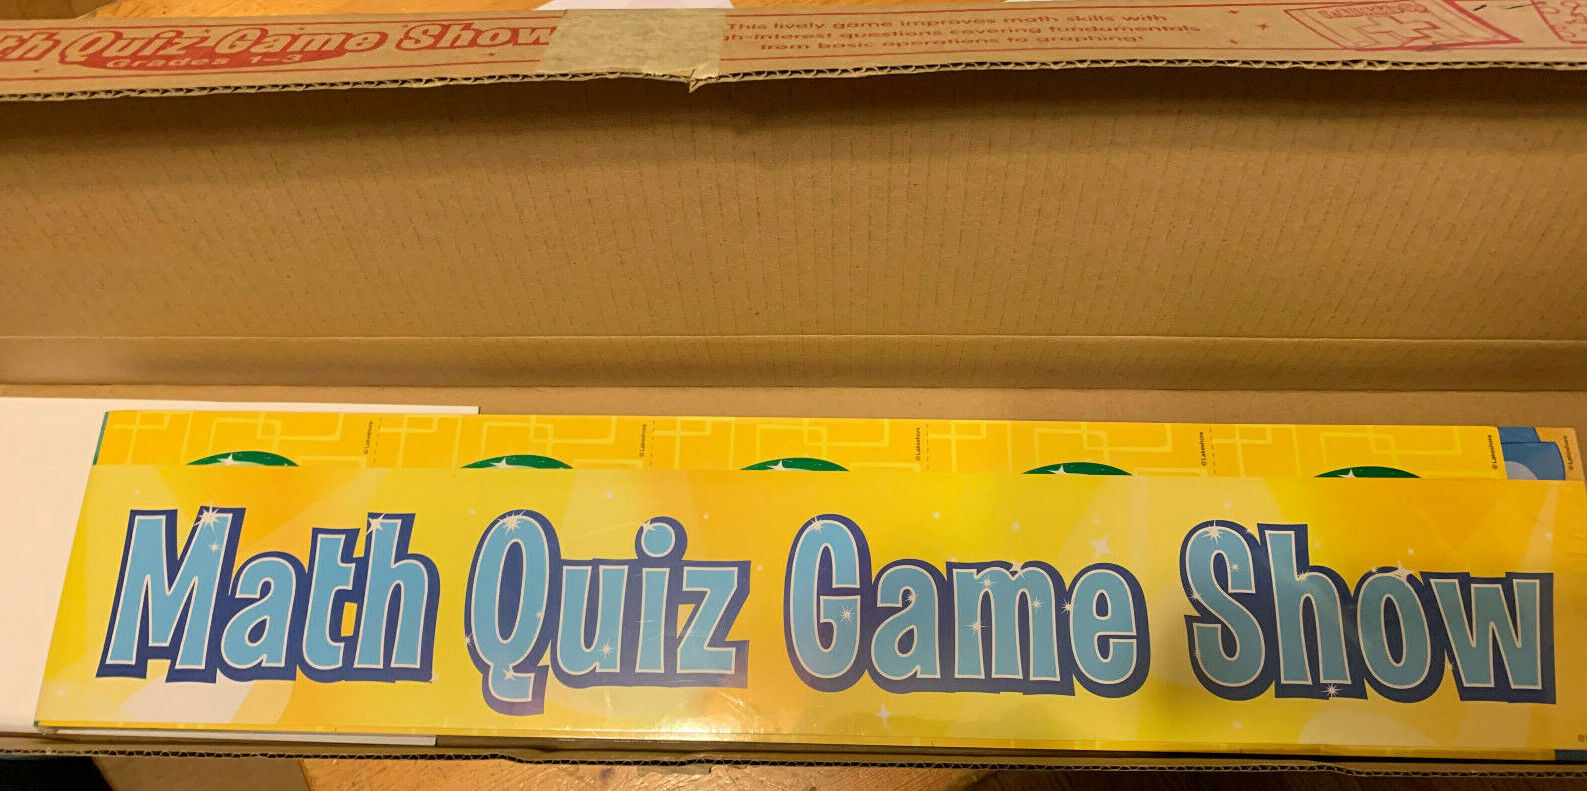 Lakeshore Math Quiz Game Show TT258 Grades 1st-3rd Brand New Never Used Sealed